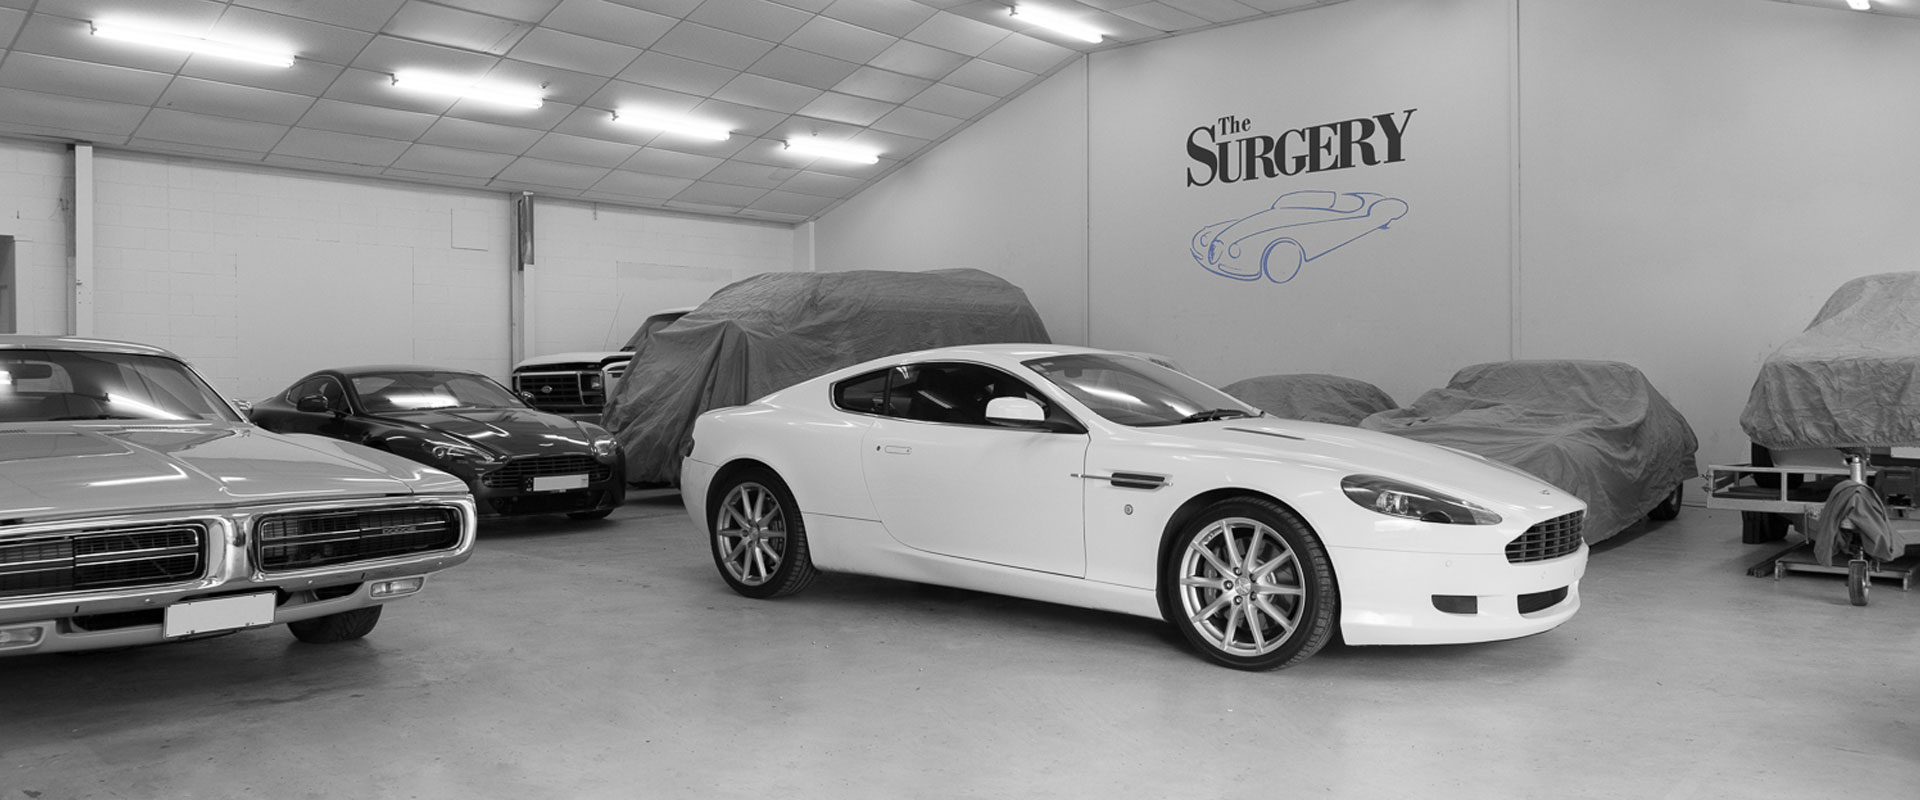 elite rent a car case solution About elite elite car hire brings you the pick of the world's great marques ours is possibly the best choice of performance cars for hire available anywhere in the uk.